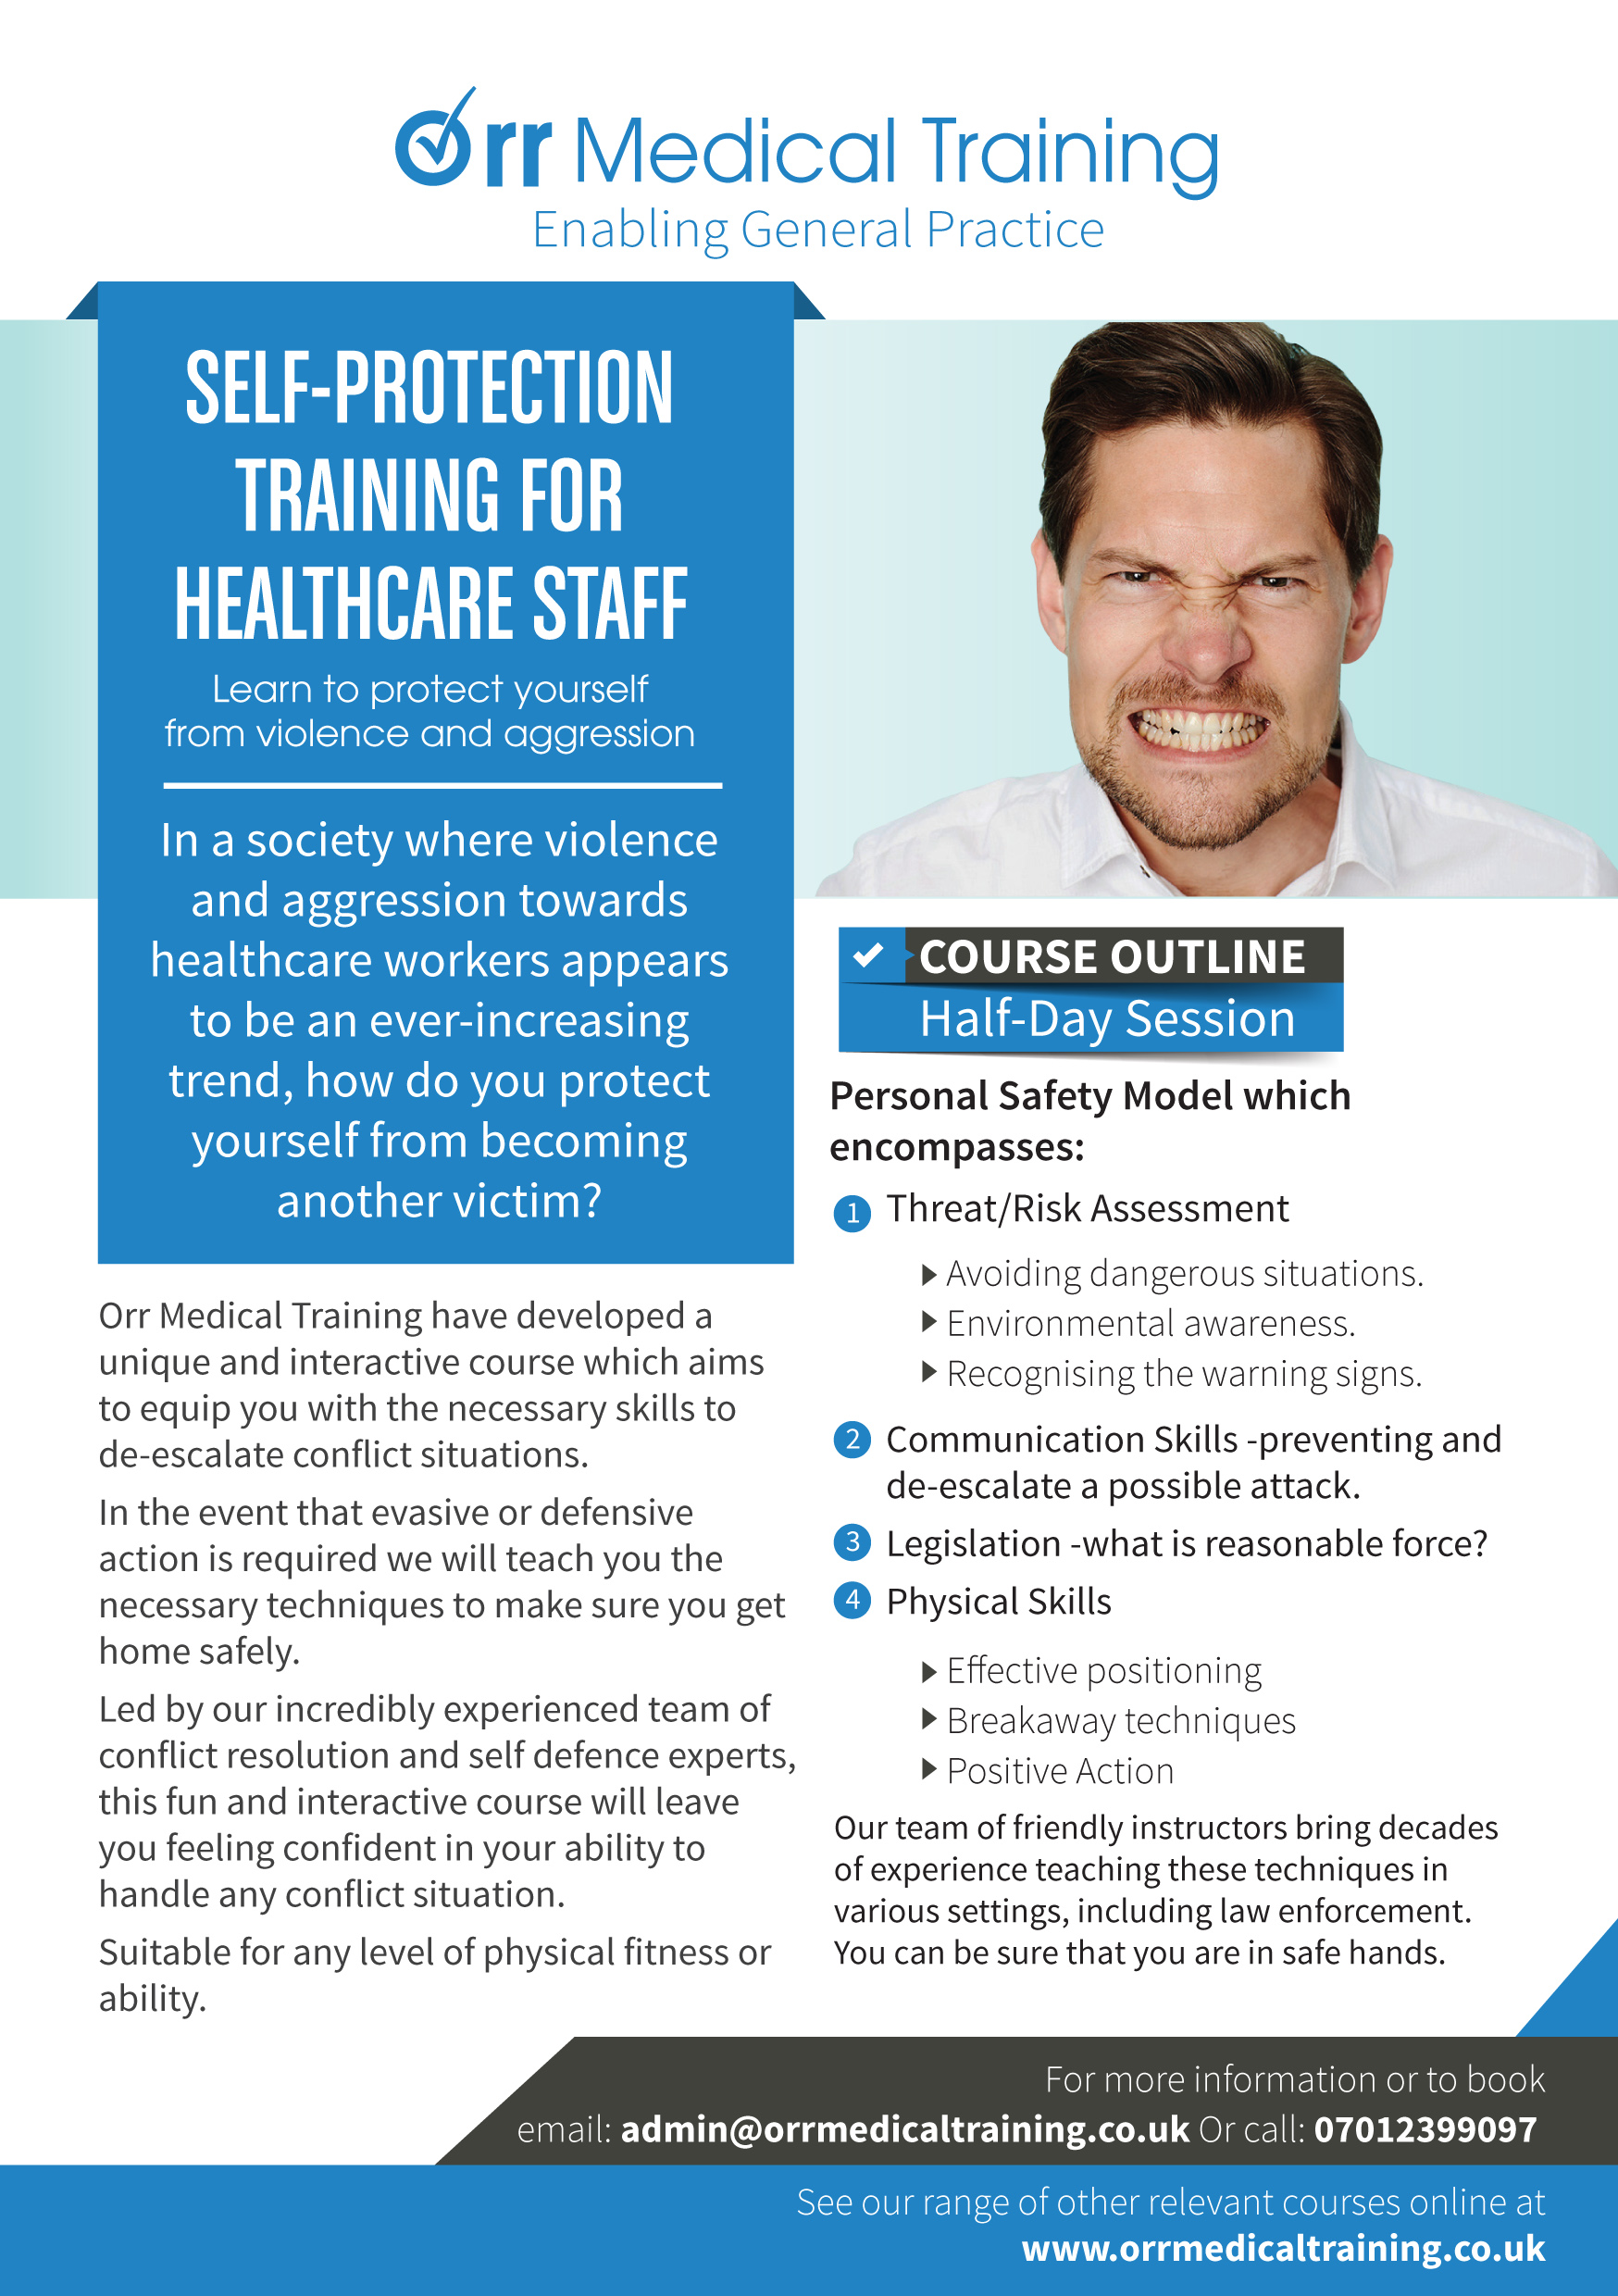 Self-Protection Training For Healthcare Staff